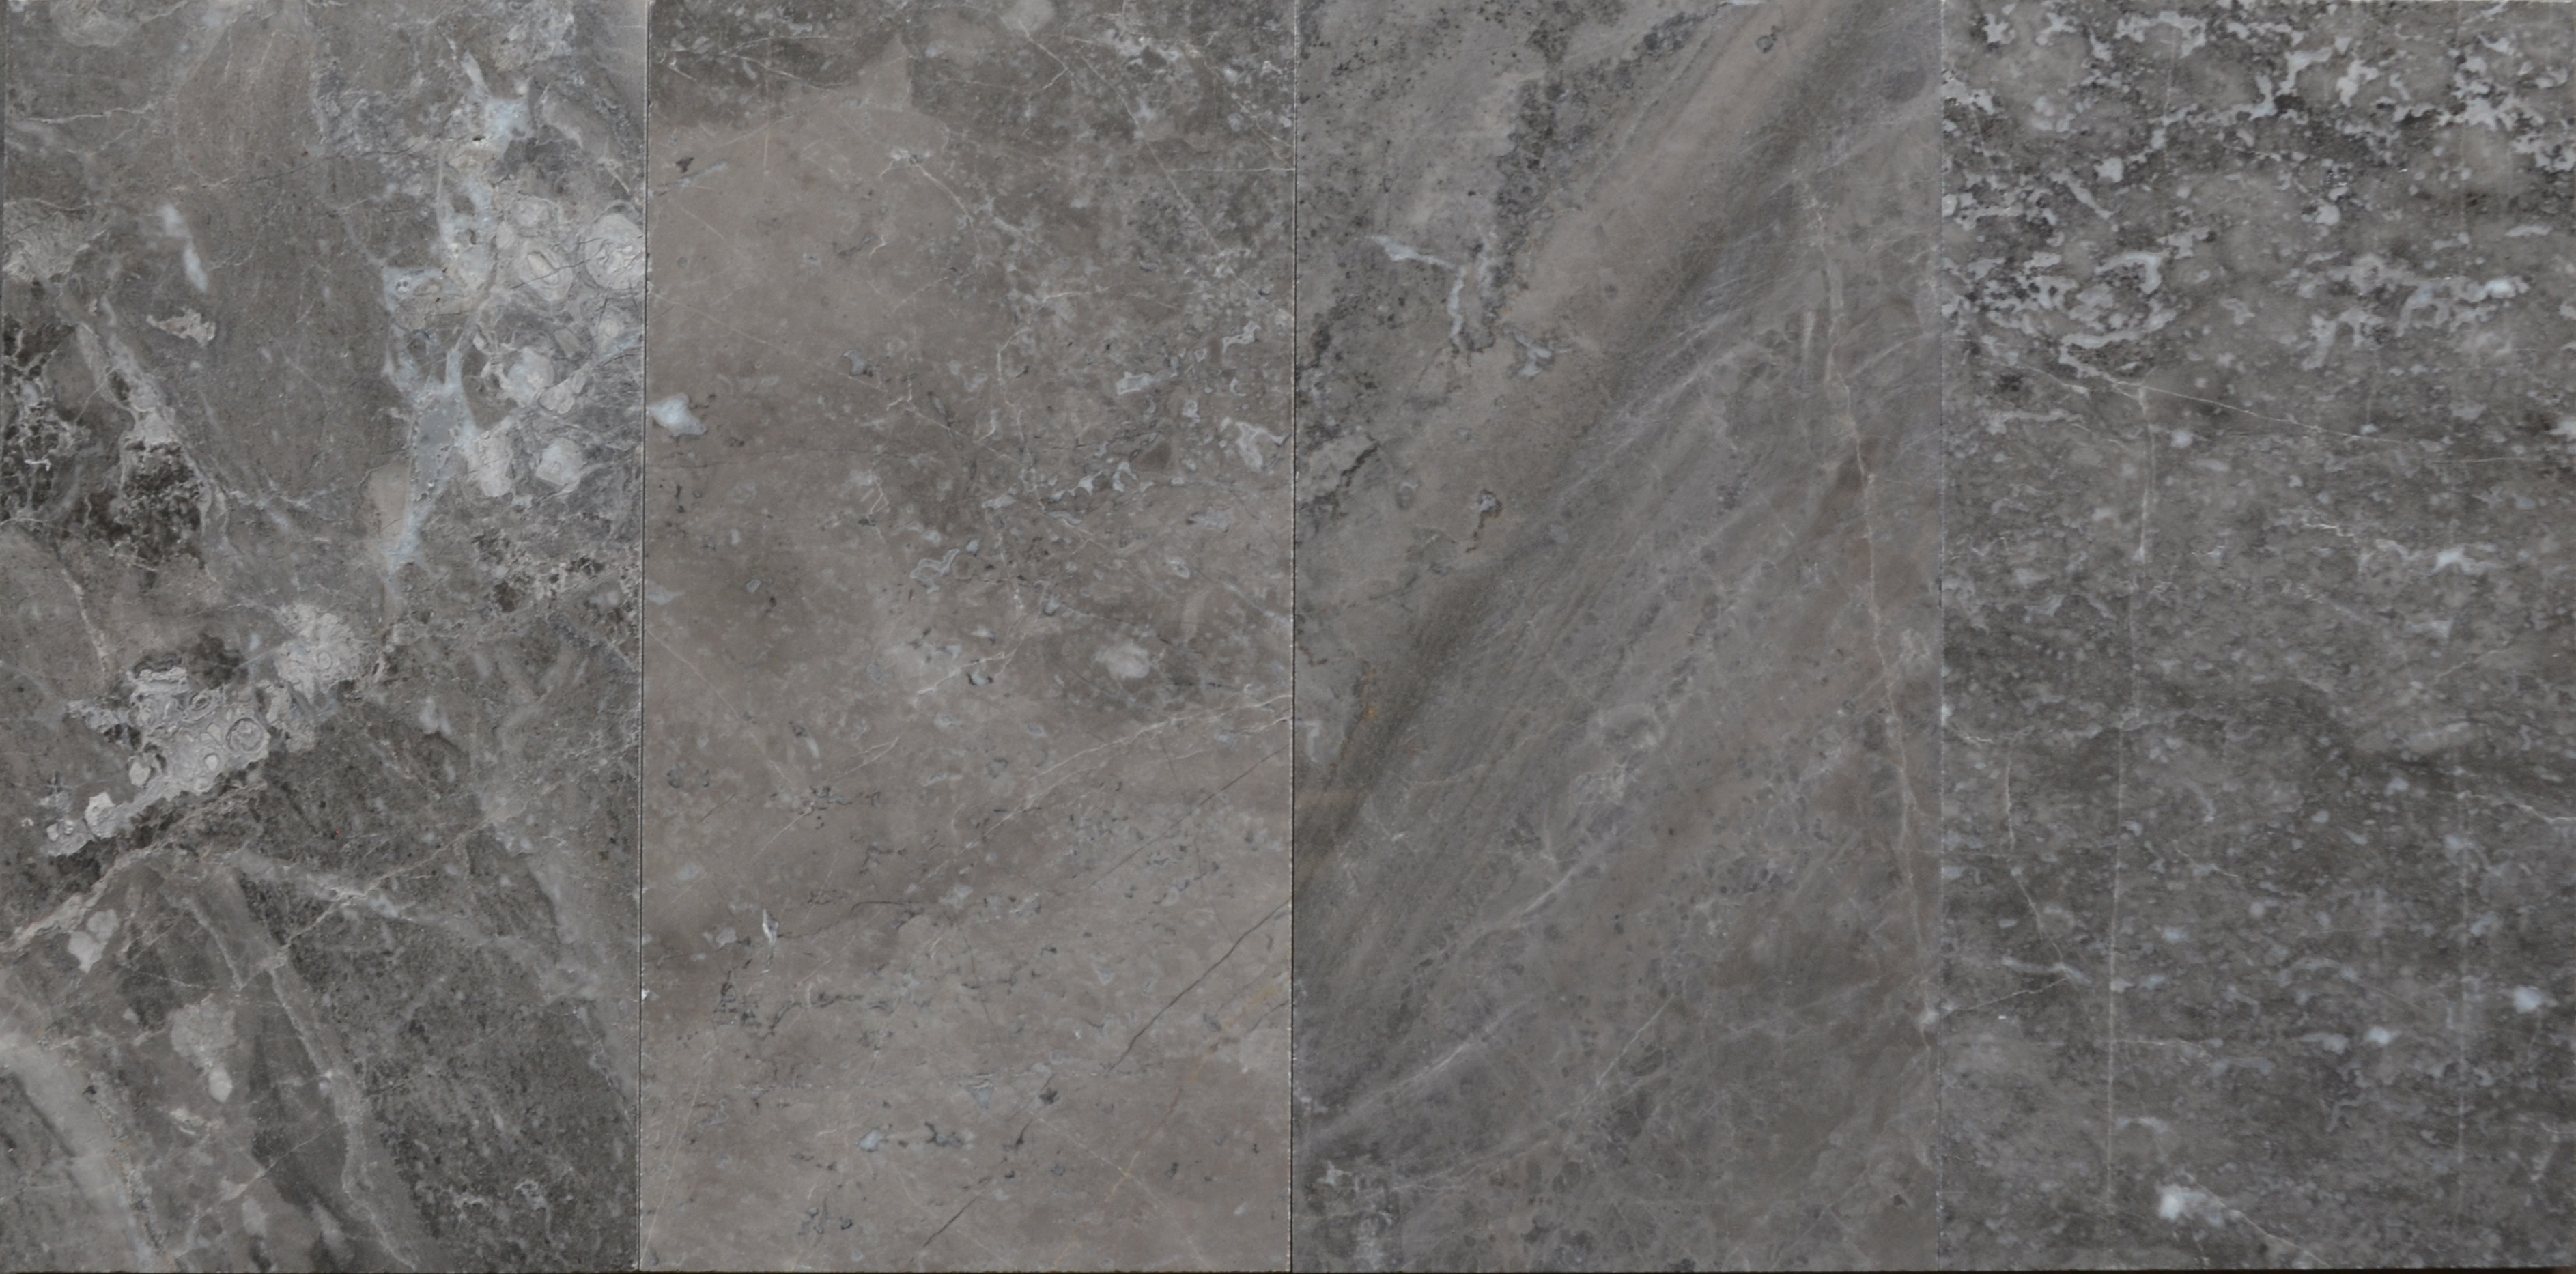 Silver Polished Marble Tiles 6x12 (1)